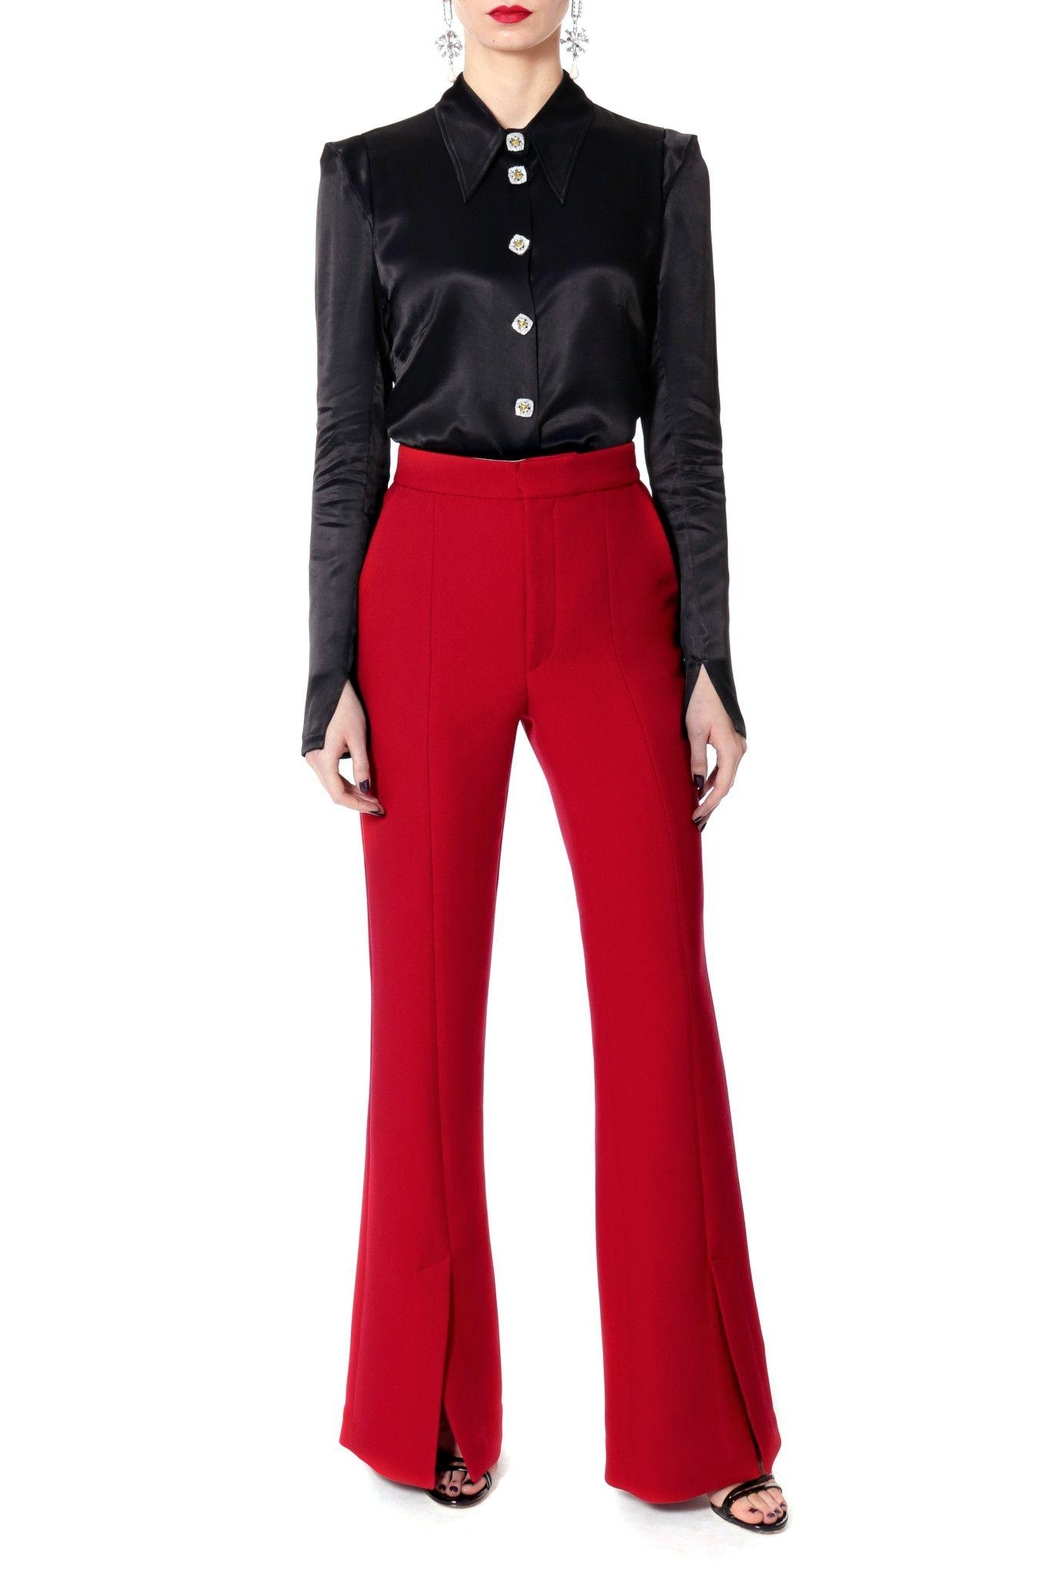 AGGI Pants Monica Lipstick Red - Height 165 - Front Cropped Image